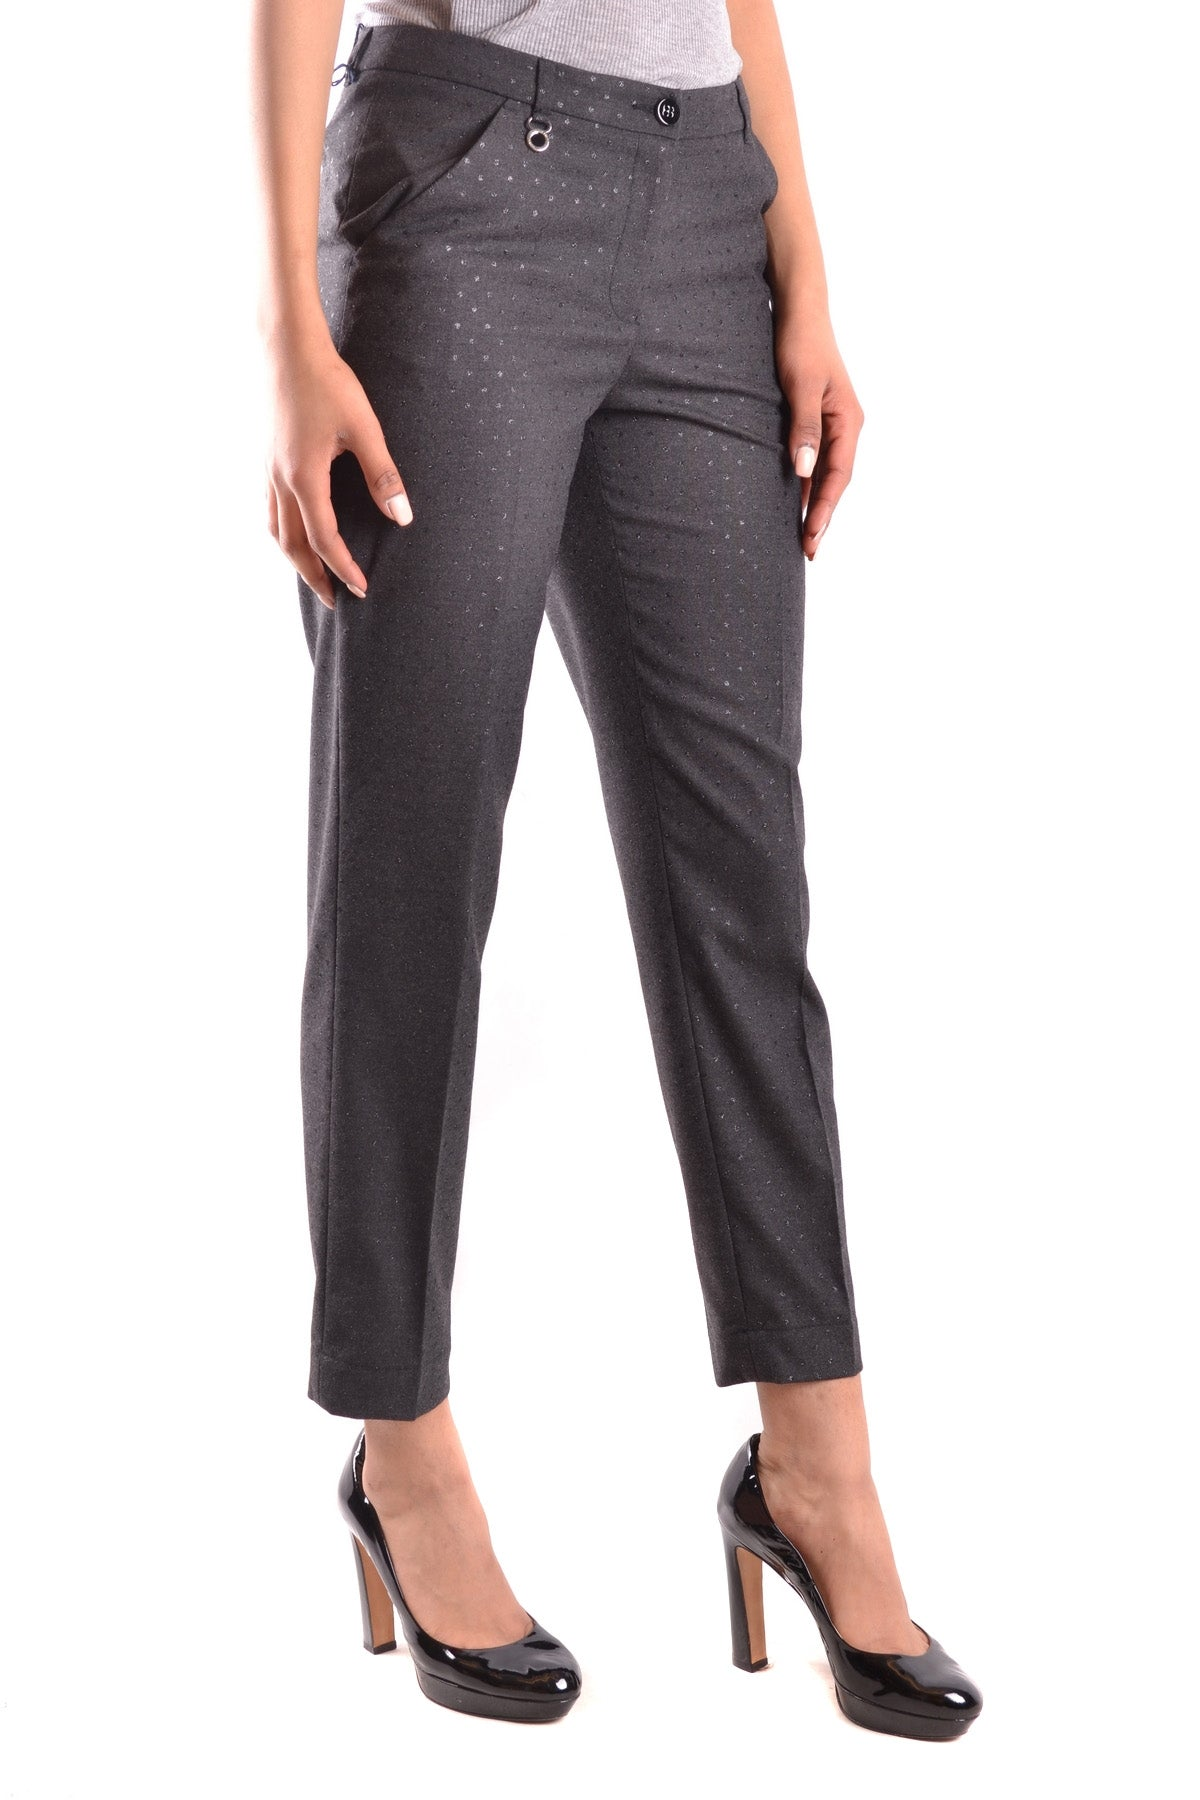 Trousers Armani Jeans-Trousers - WOMAN-Product Details Terms: New With LabelYear: 2017Main Color: GrayGender: WomanMade In: RomaniaSize: ItSeason: Fall / WinterClothing Type: TrousersComposition: Elastane 3%, Polyester 63%, Viscose 34%-Keyomi-Sook